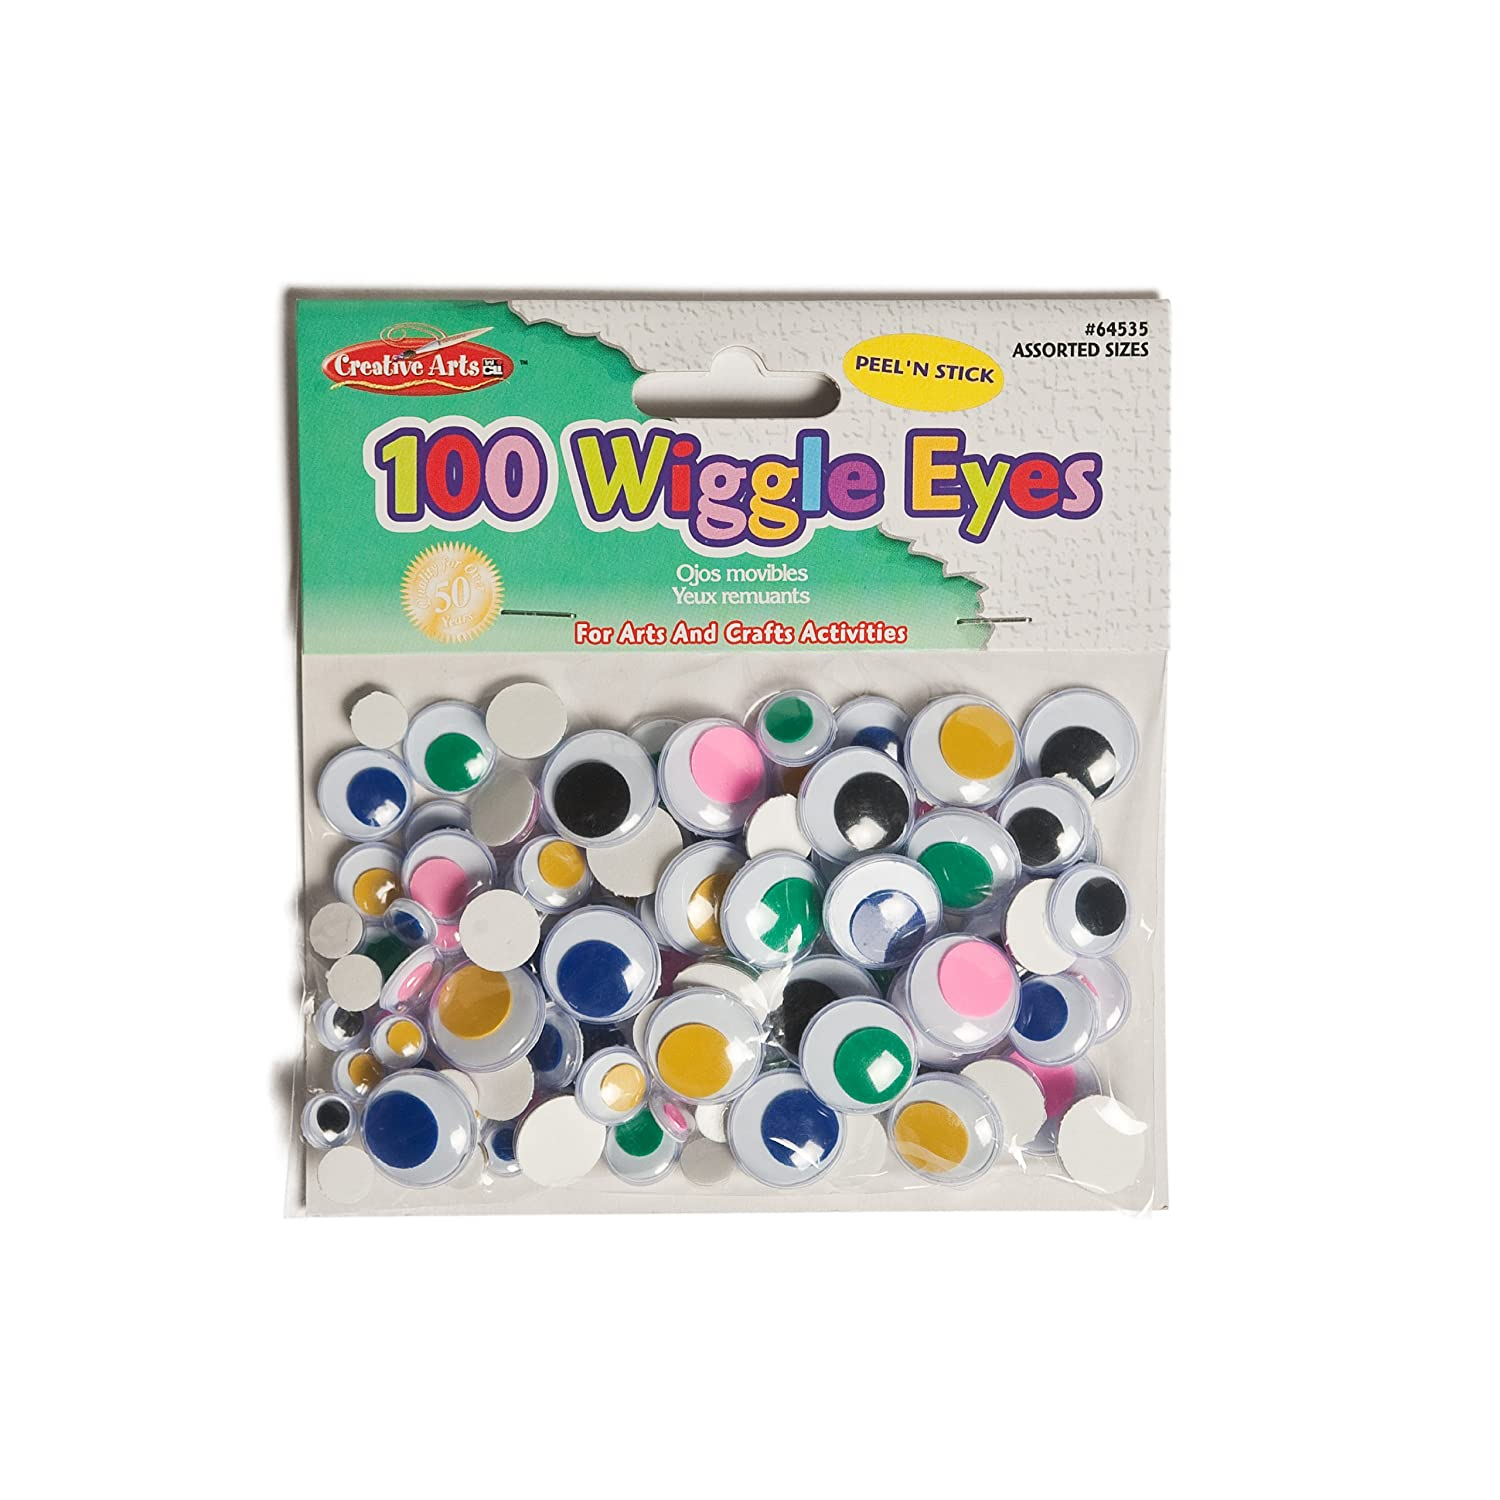 Creative Arts by Creative Arts by Charles Leonard Wiggle Eyes, Peel'n Stick, Black, Assorted Sizes, 100/Bag (64530) Peel'n Stick Charles Leonard Inc. NAS-B004G59EDE